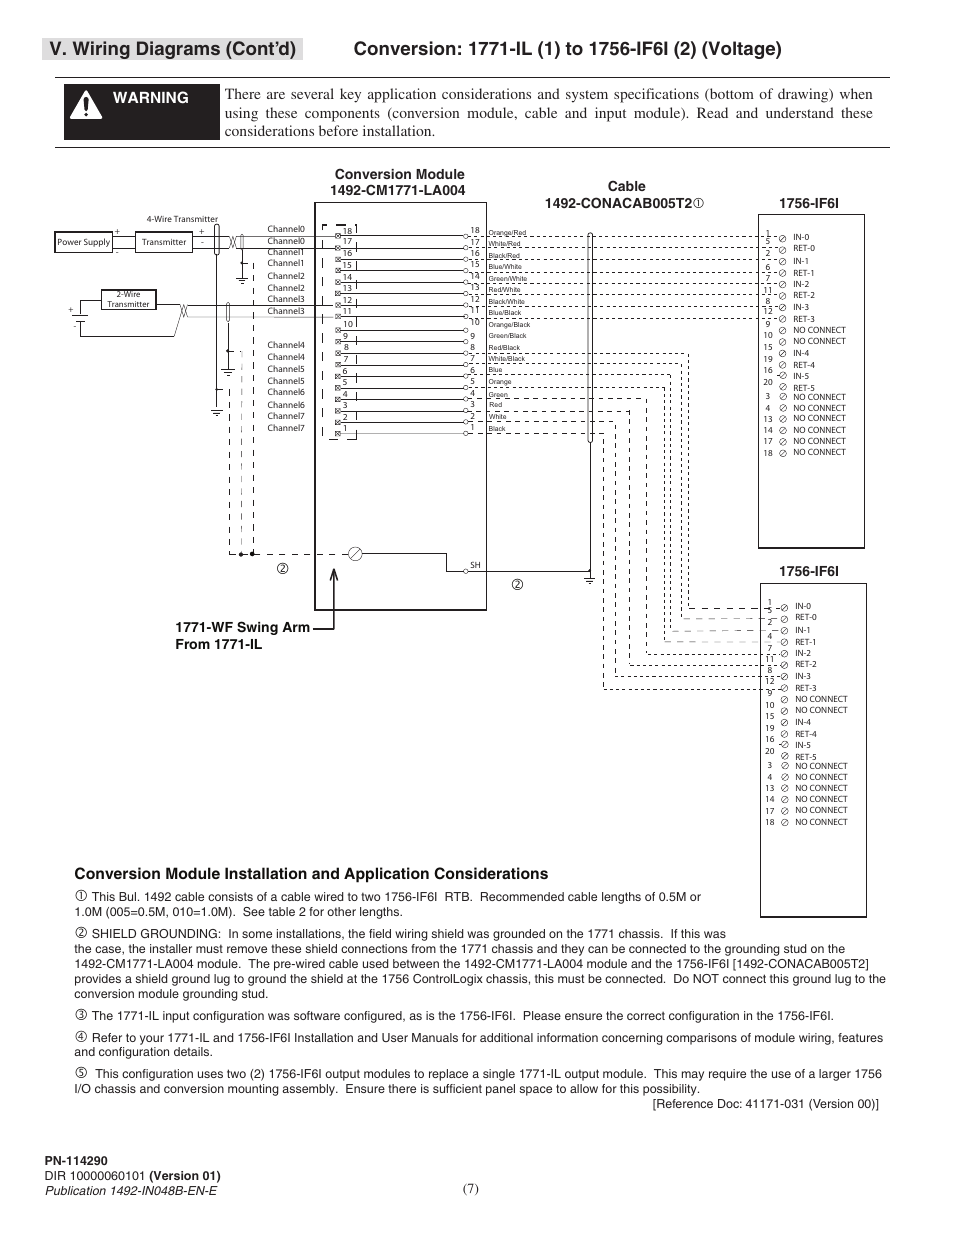 V Wiring Diagrams Contd Rockwell Automation 1492 Cm1771 La004 Analog Diagram